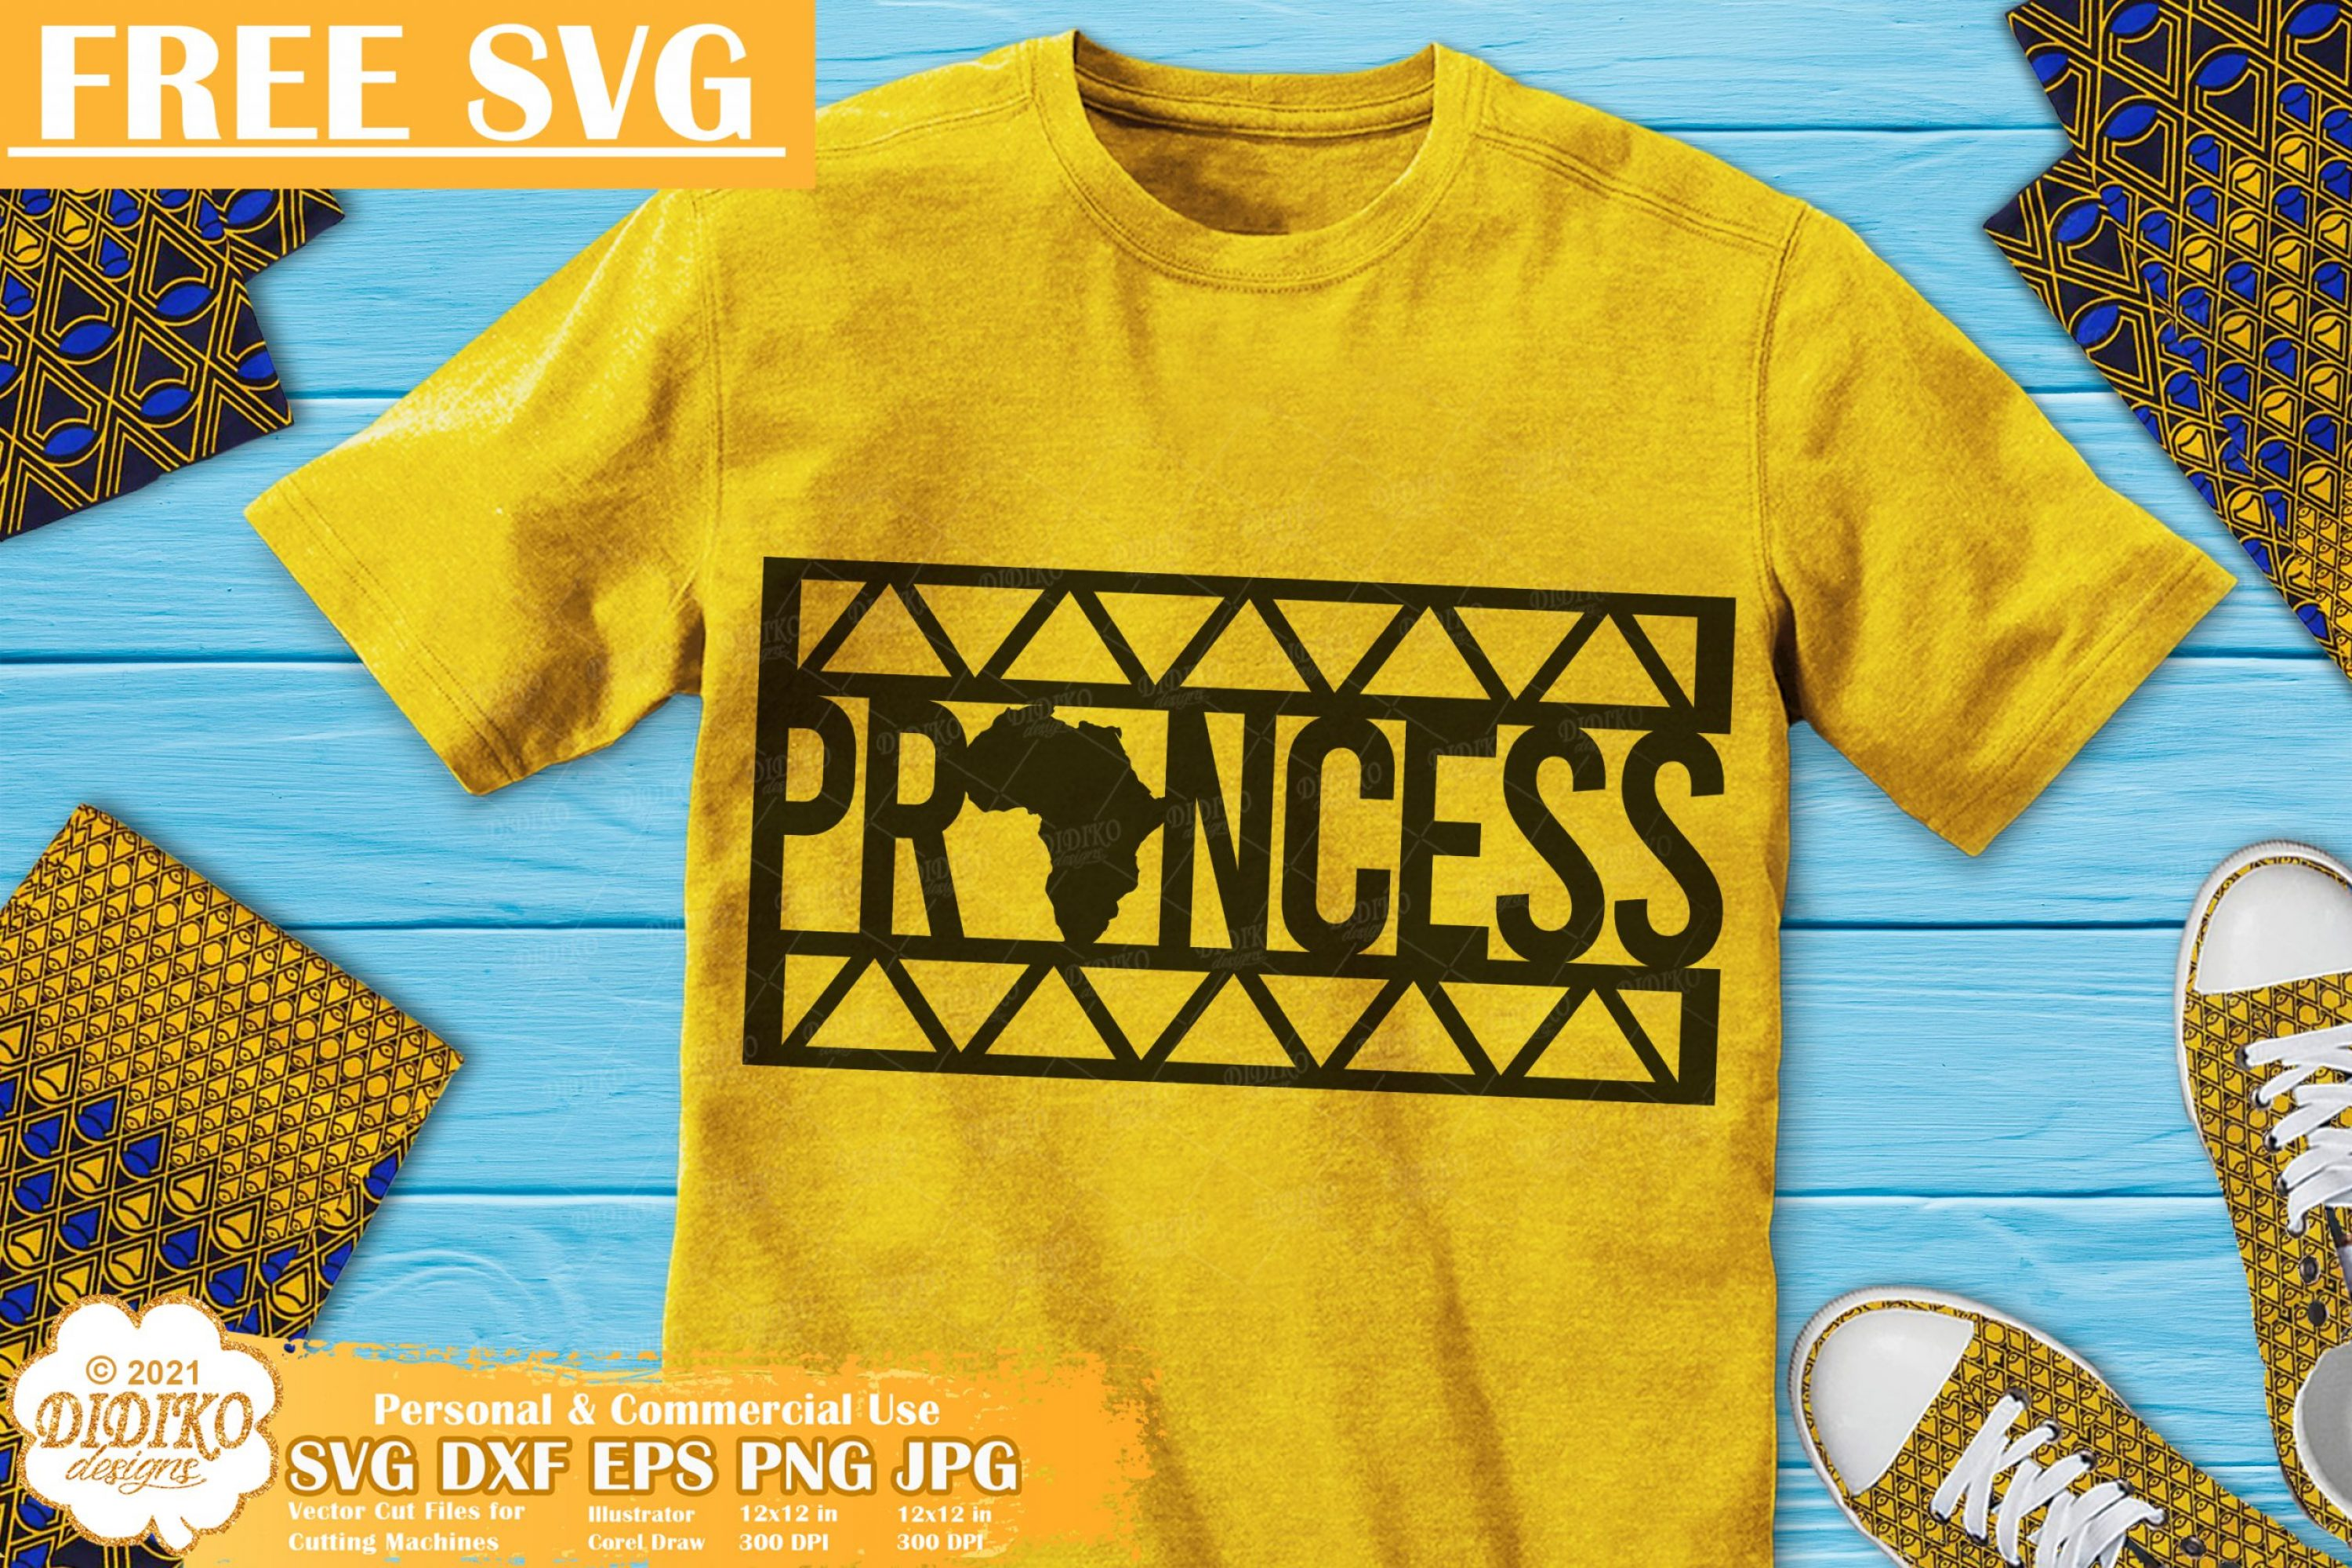 Black Princess Free SVG, Black Girl Svg, Ankara Svg